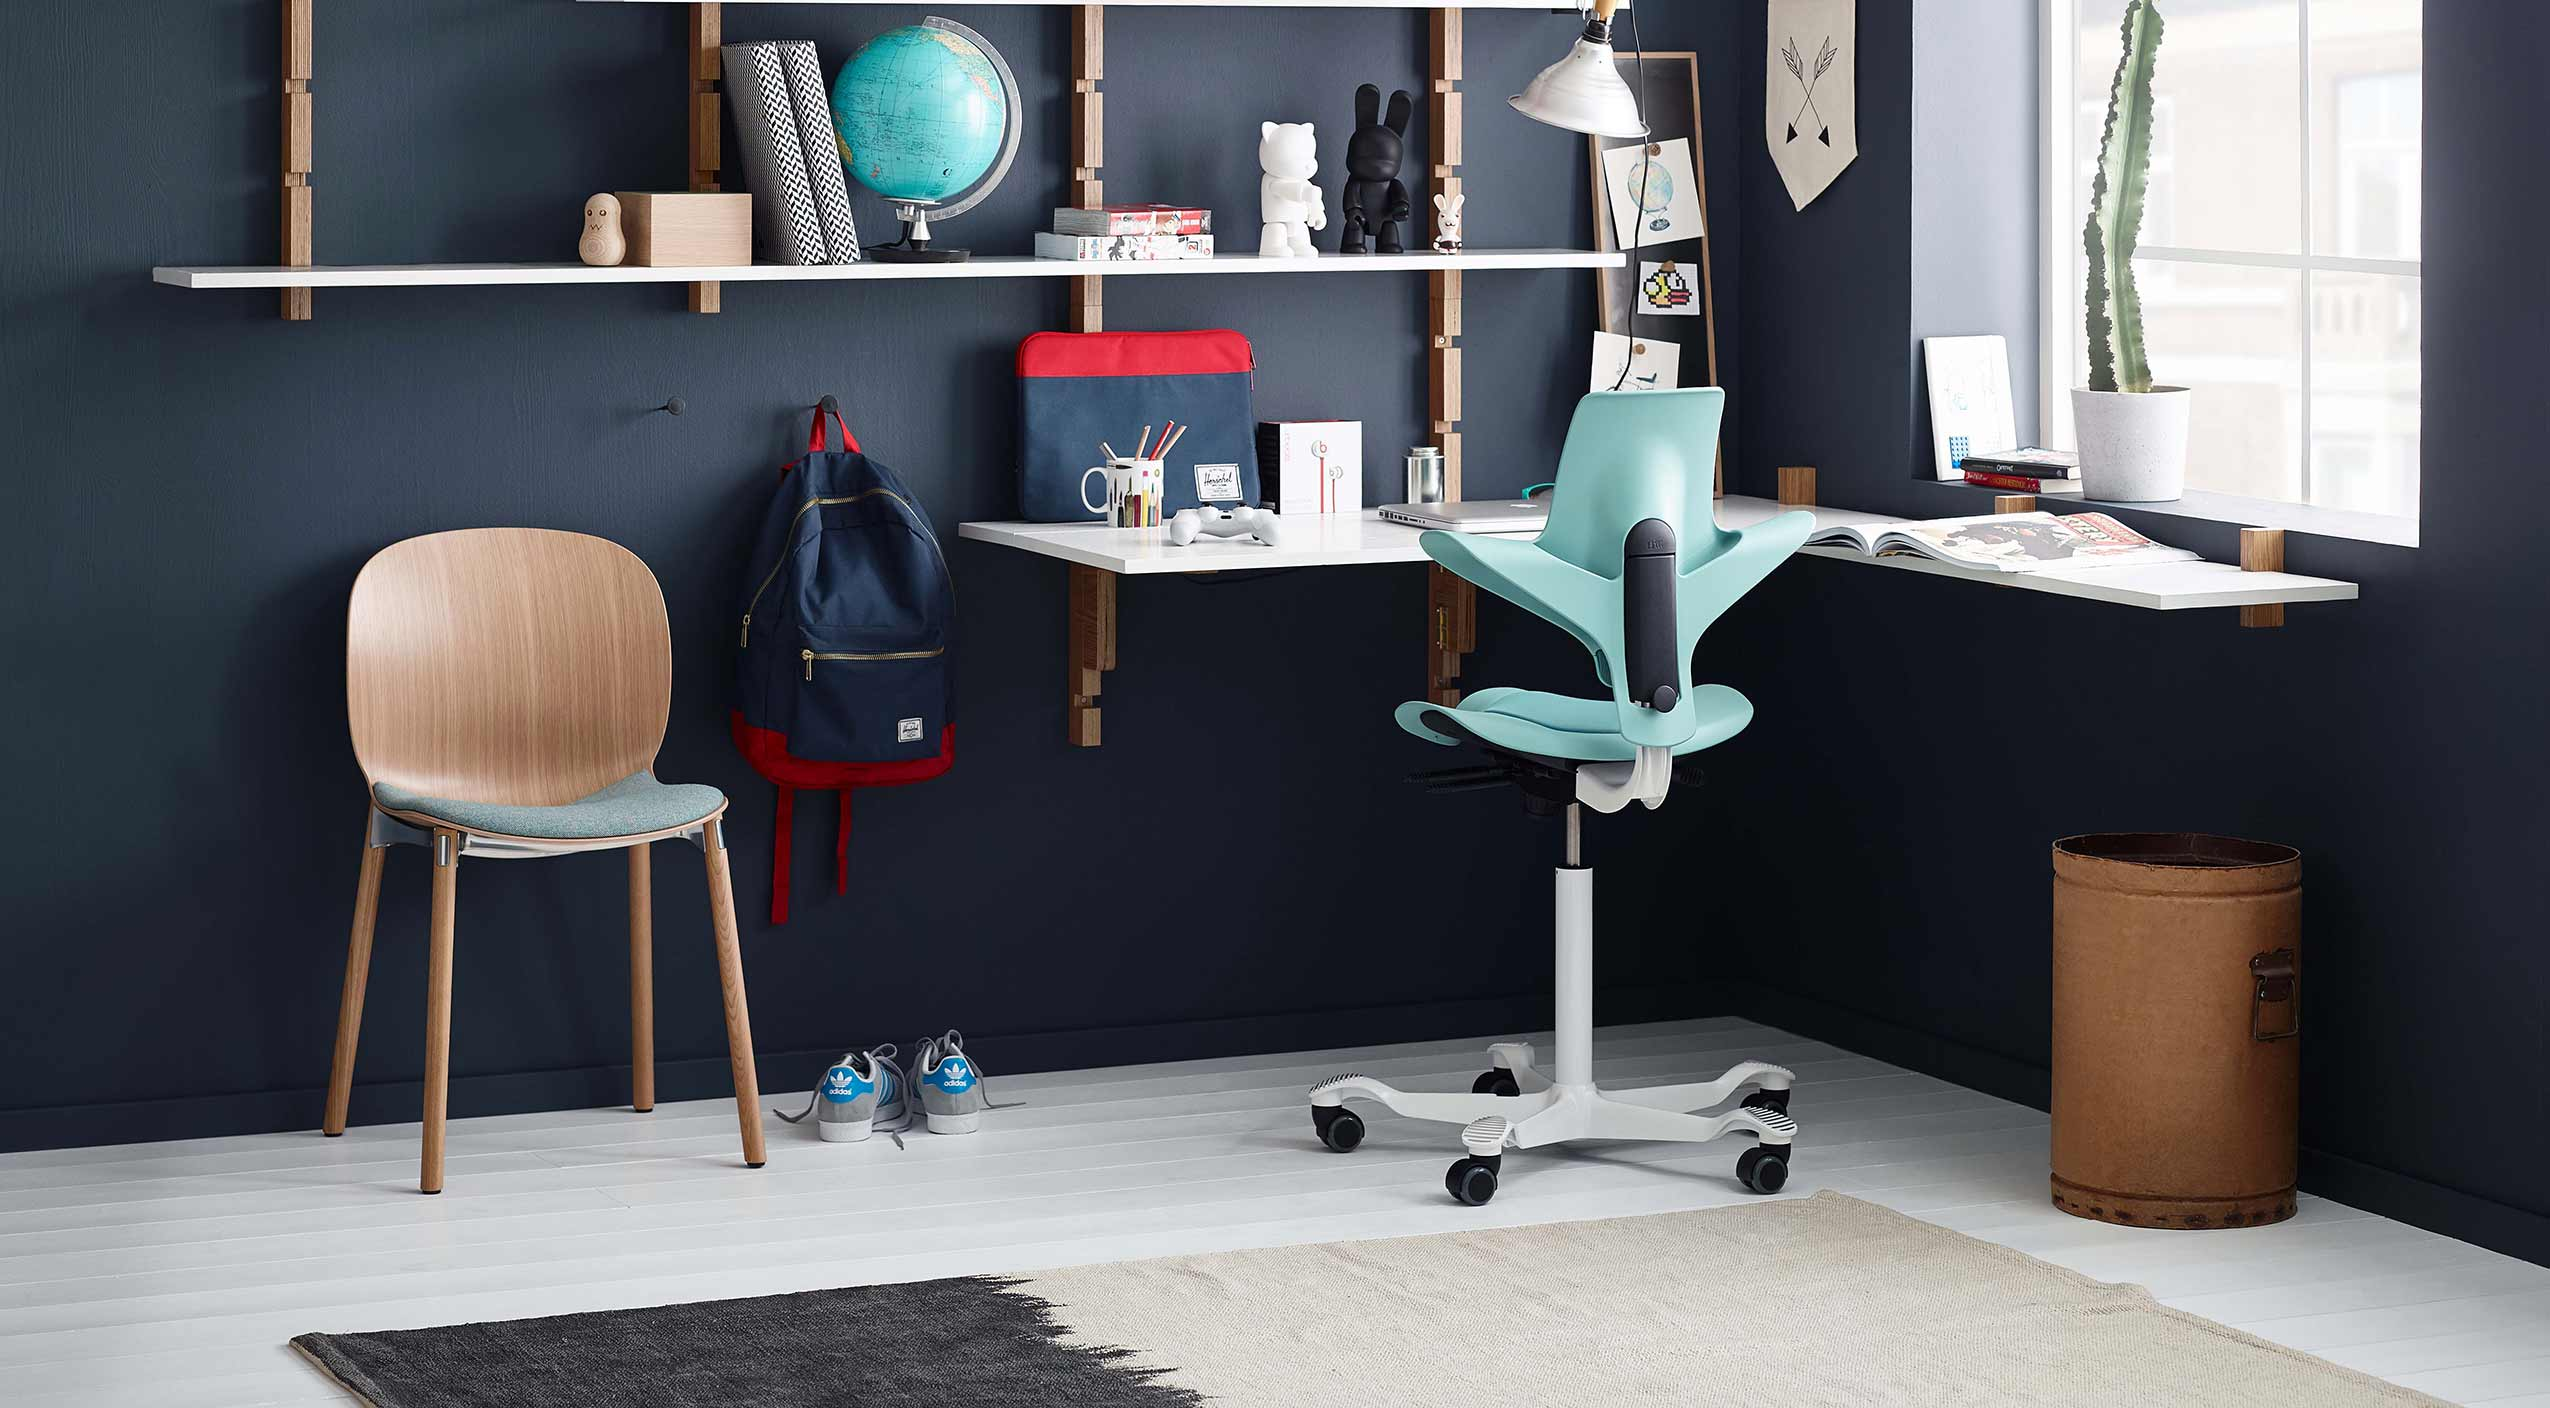 Design tips for creating a home office - HÅG Capisco chair and RBM Noor